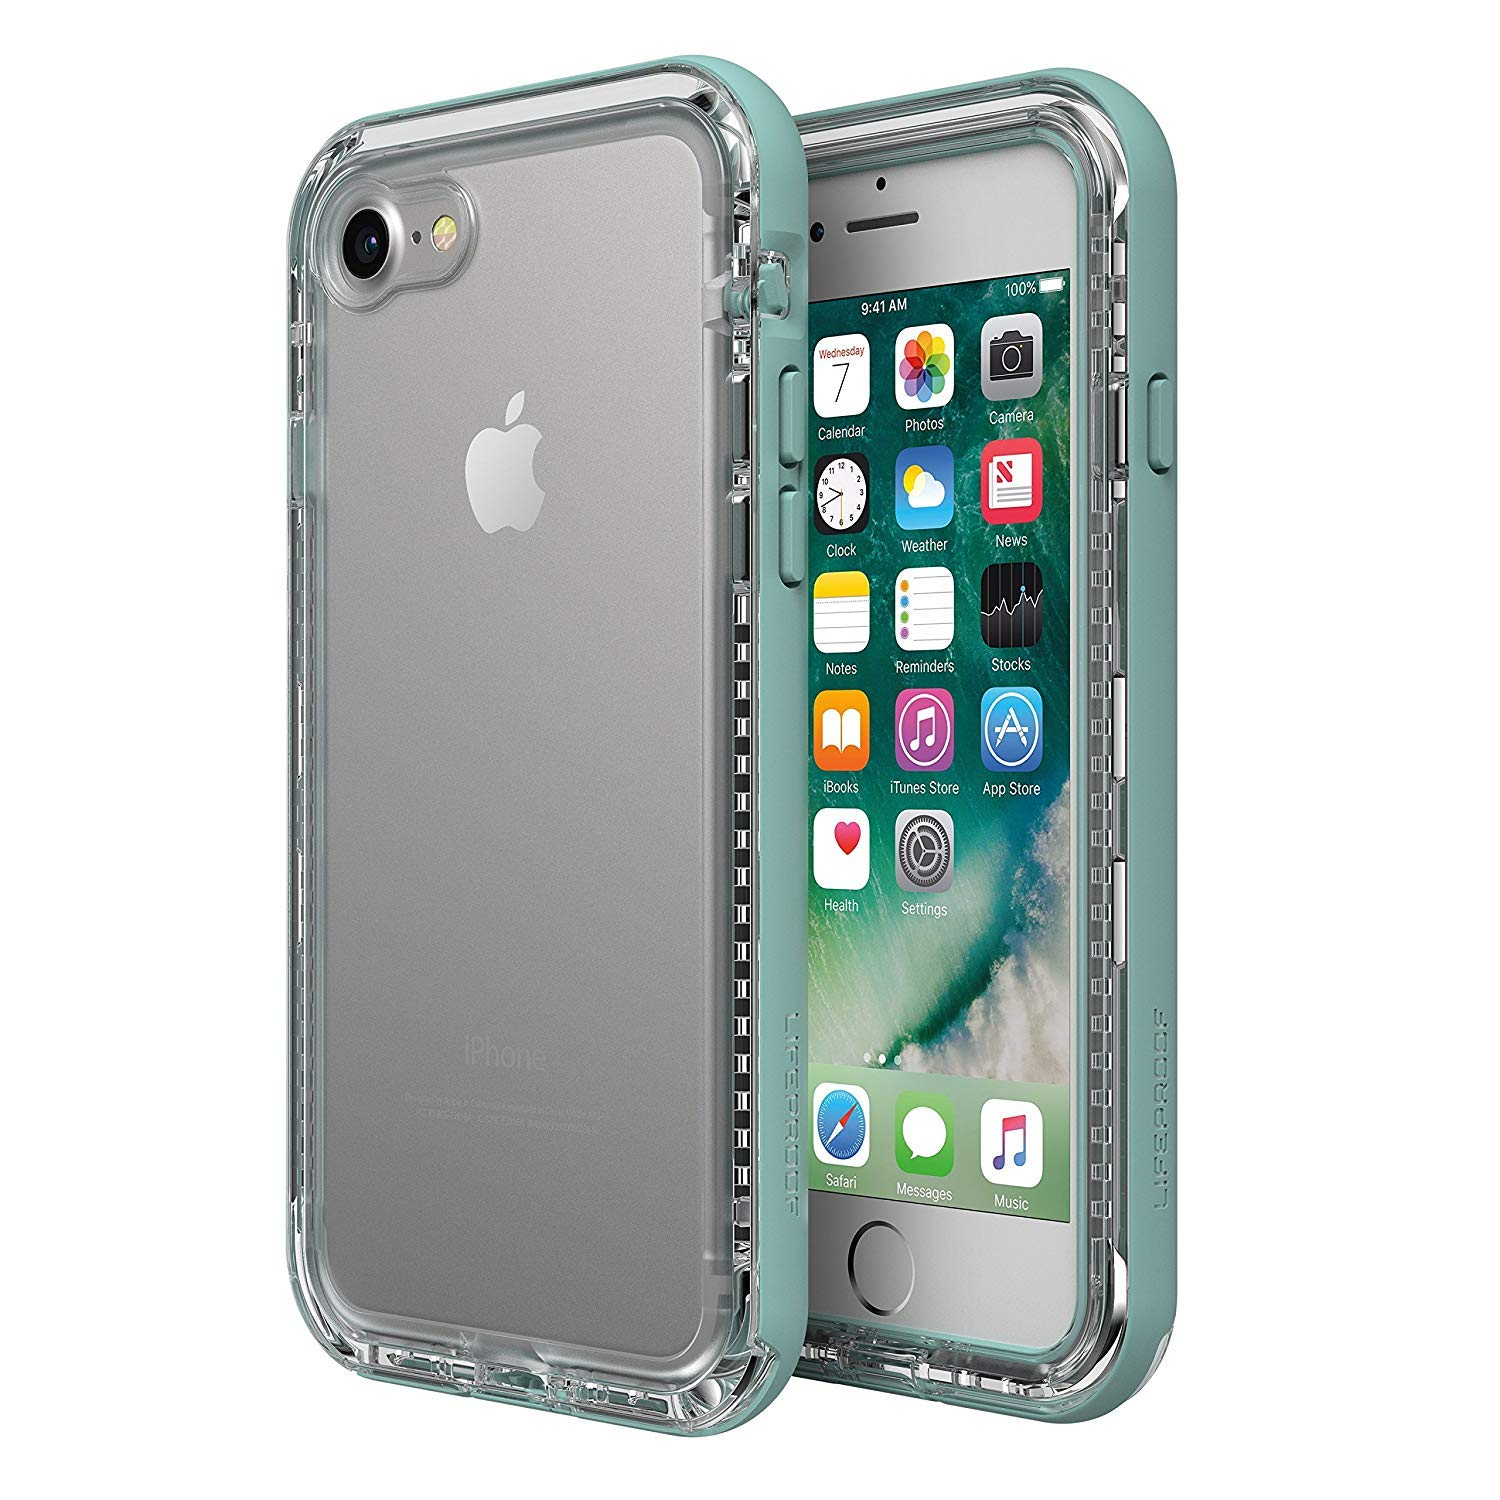 LifeProof Next Case for iPhone 8 and iPhone 7 - BEACH PEBBLE (CLEAR / SLEET GRAY) by LifeProof (Image #1)